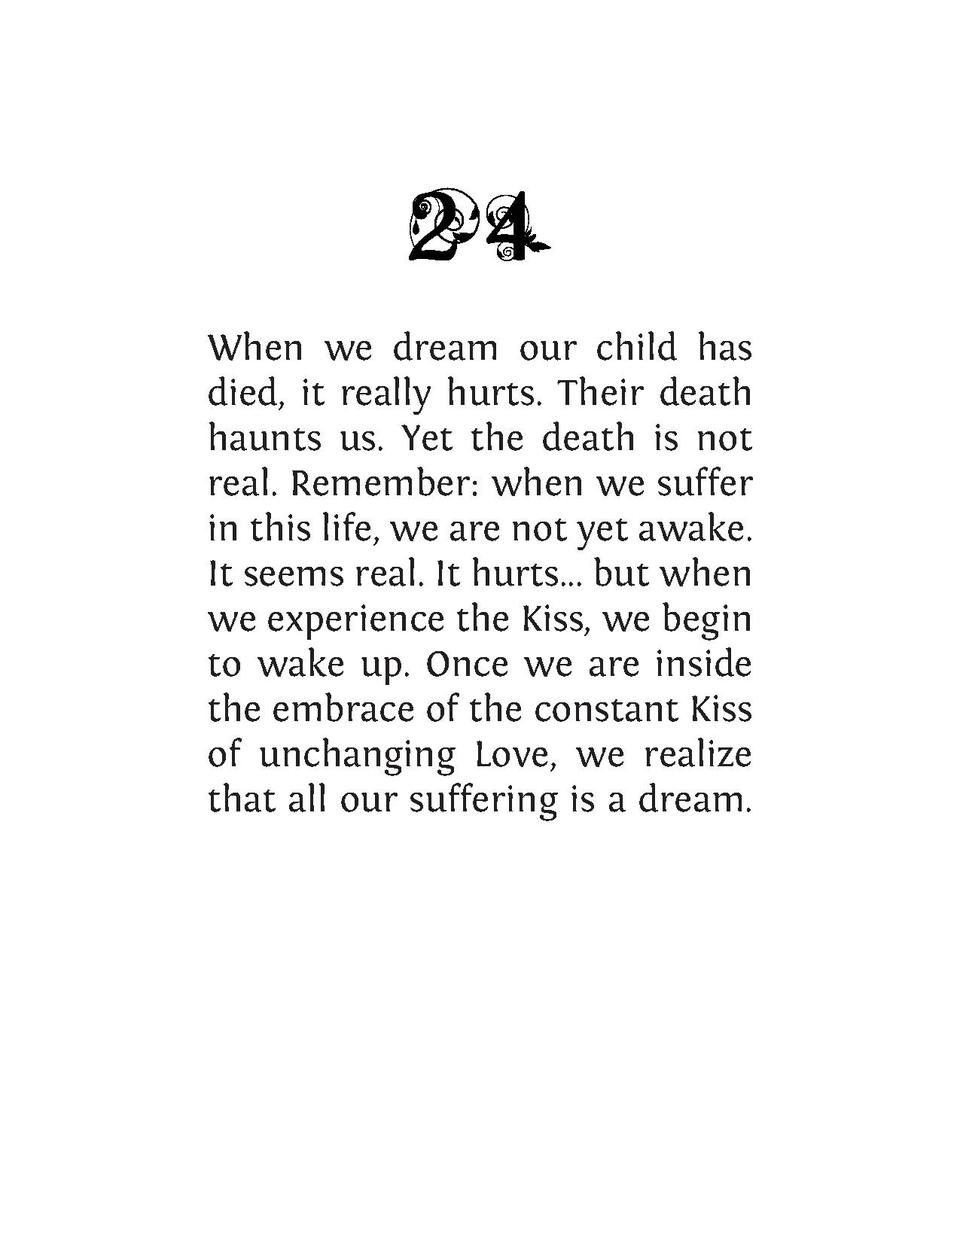 When we dream our child has died, it really hurts. Their death haunts us. Yet the death is not real. Remember  when we suf...